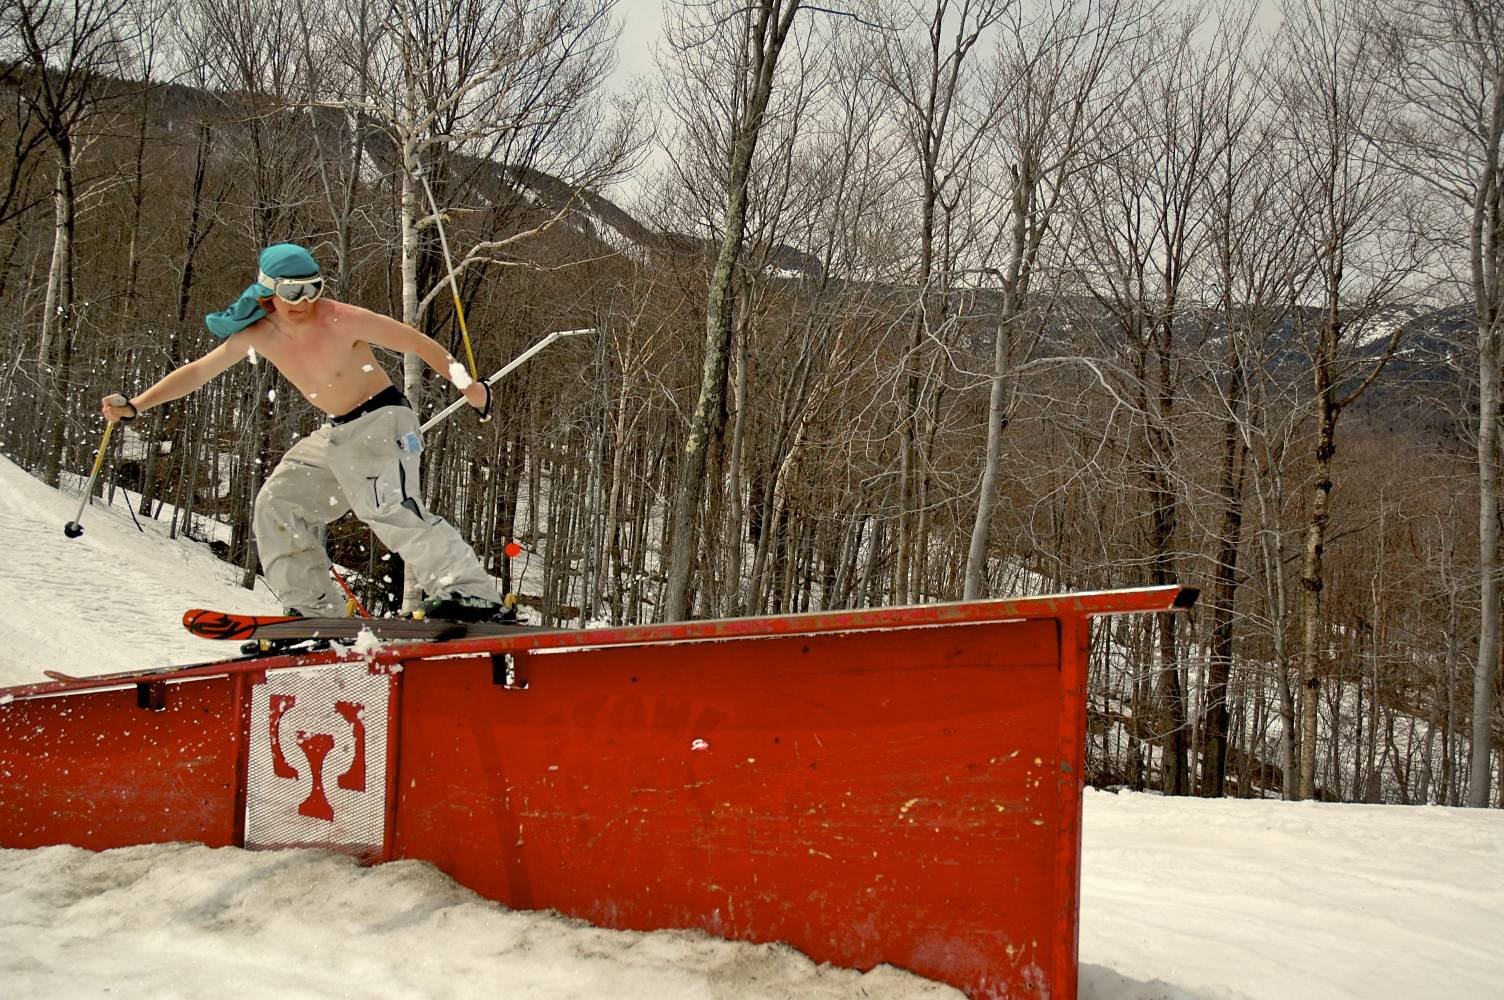 Moving Mixtapes at Stowe 4